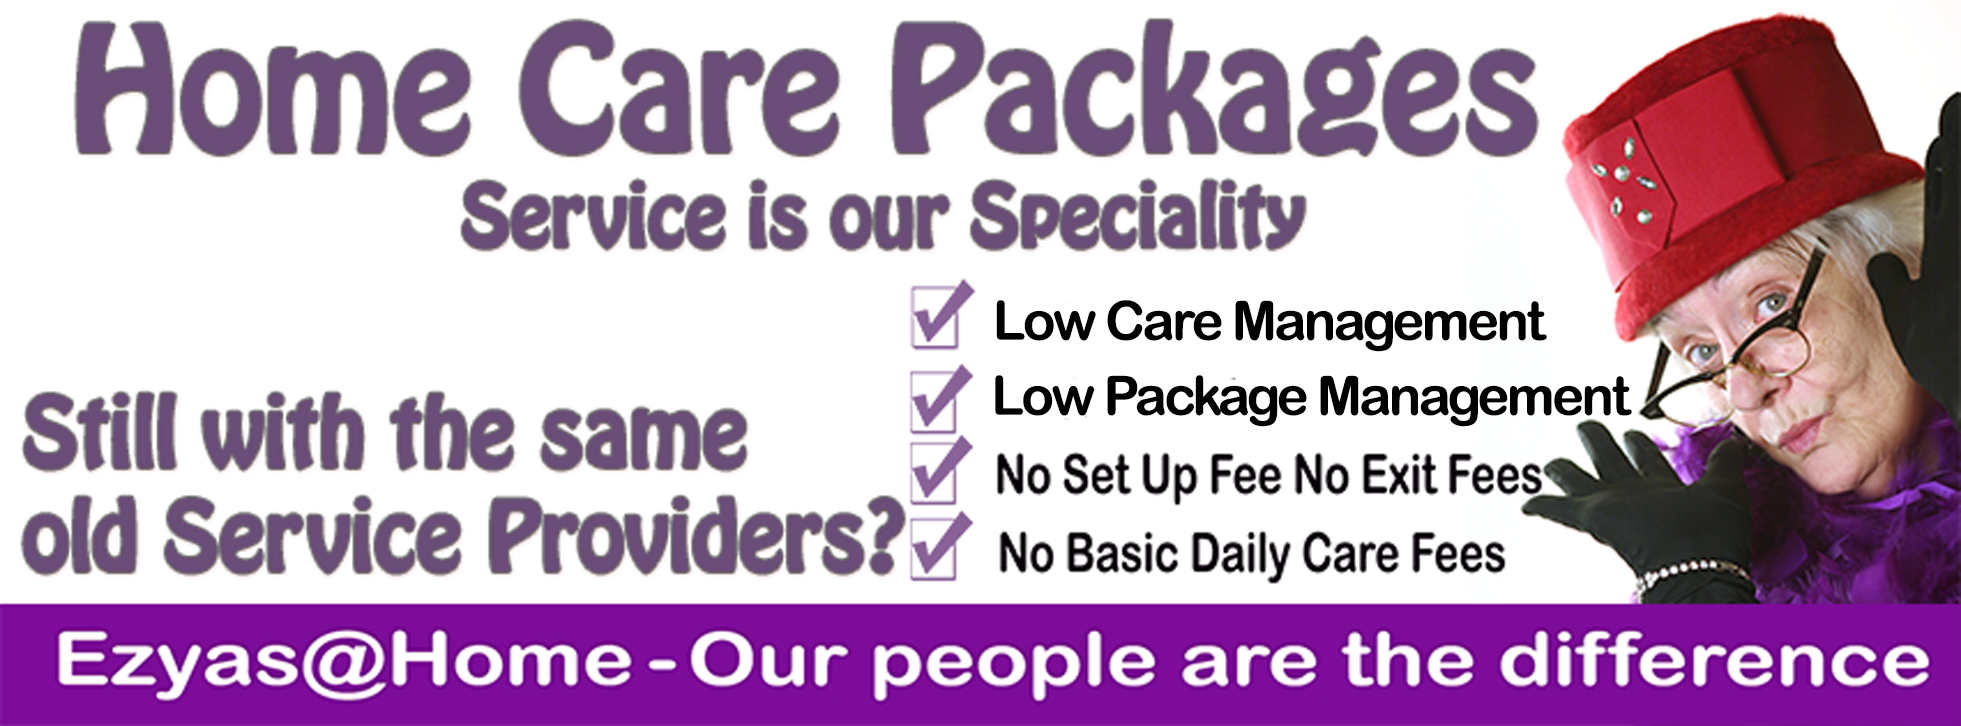 Excellent Quality - Personalised Service - Ethical Commitment to Our Clients